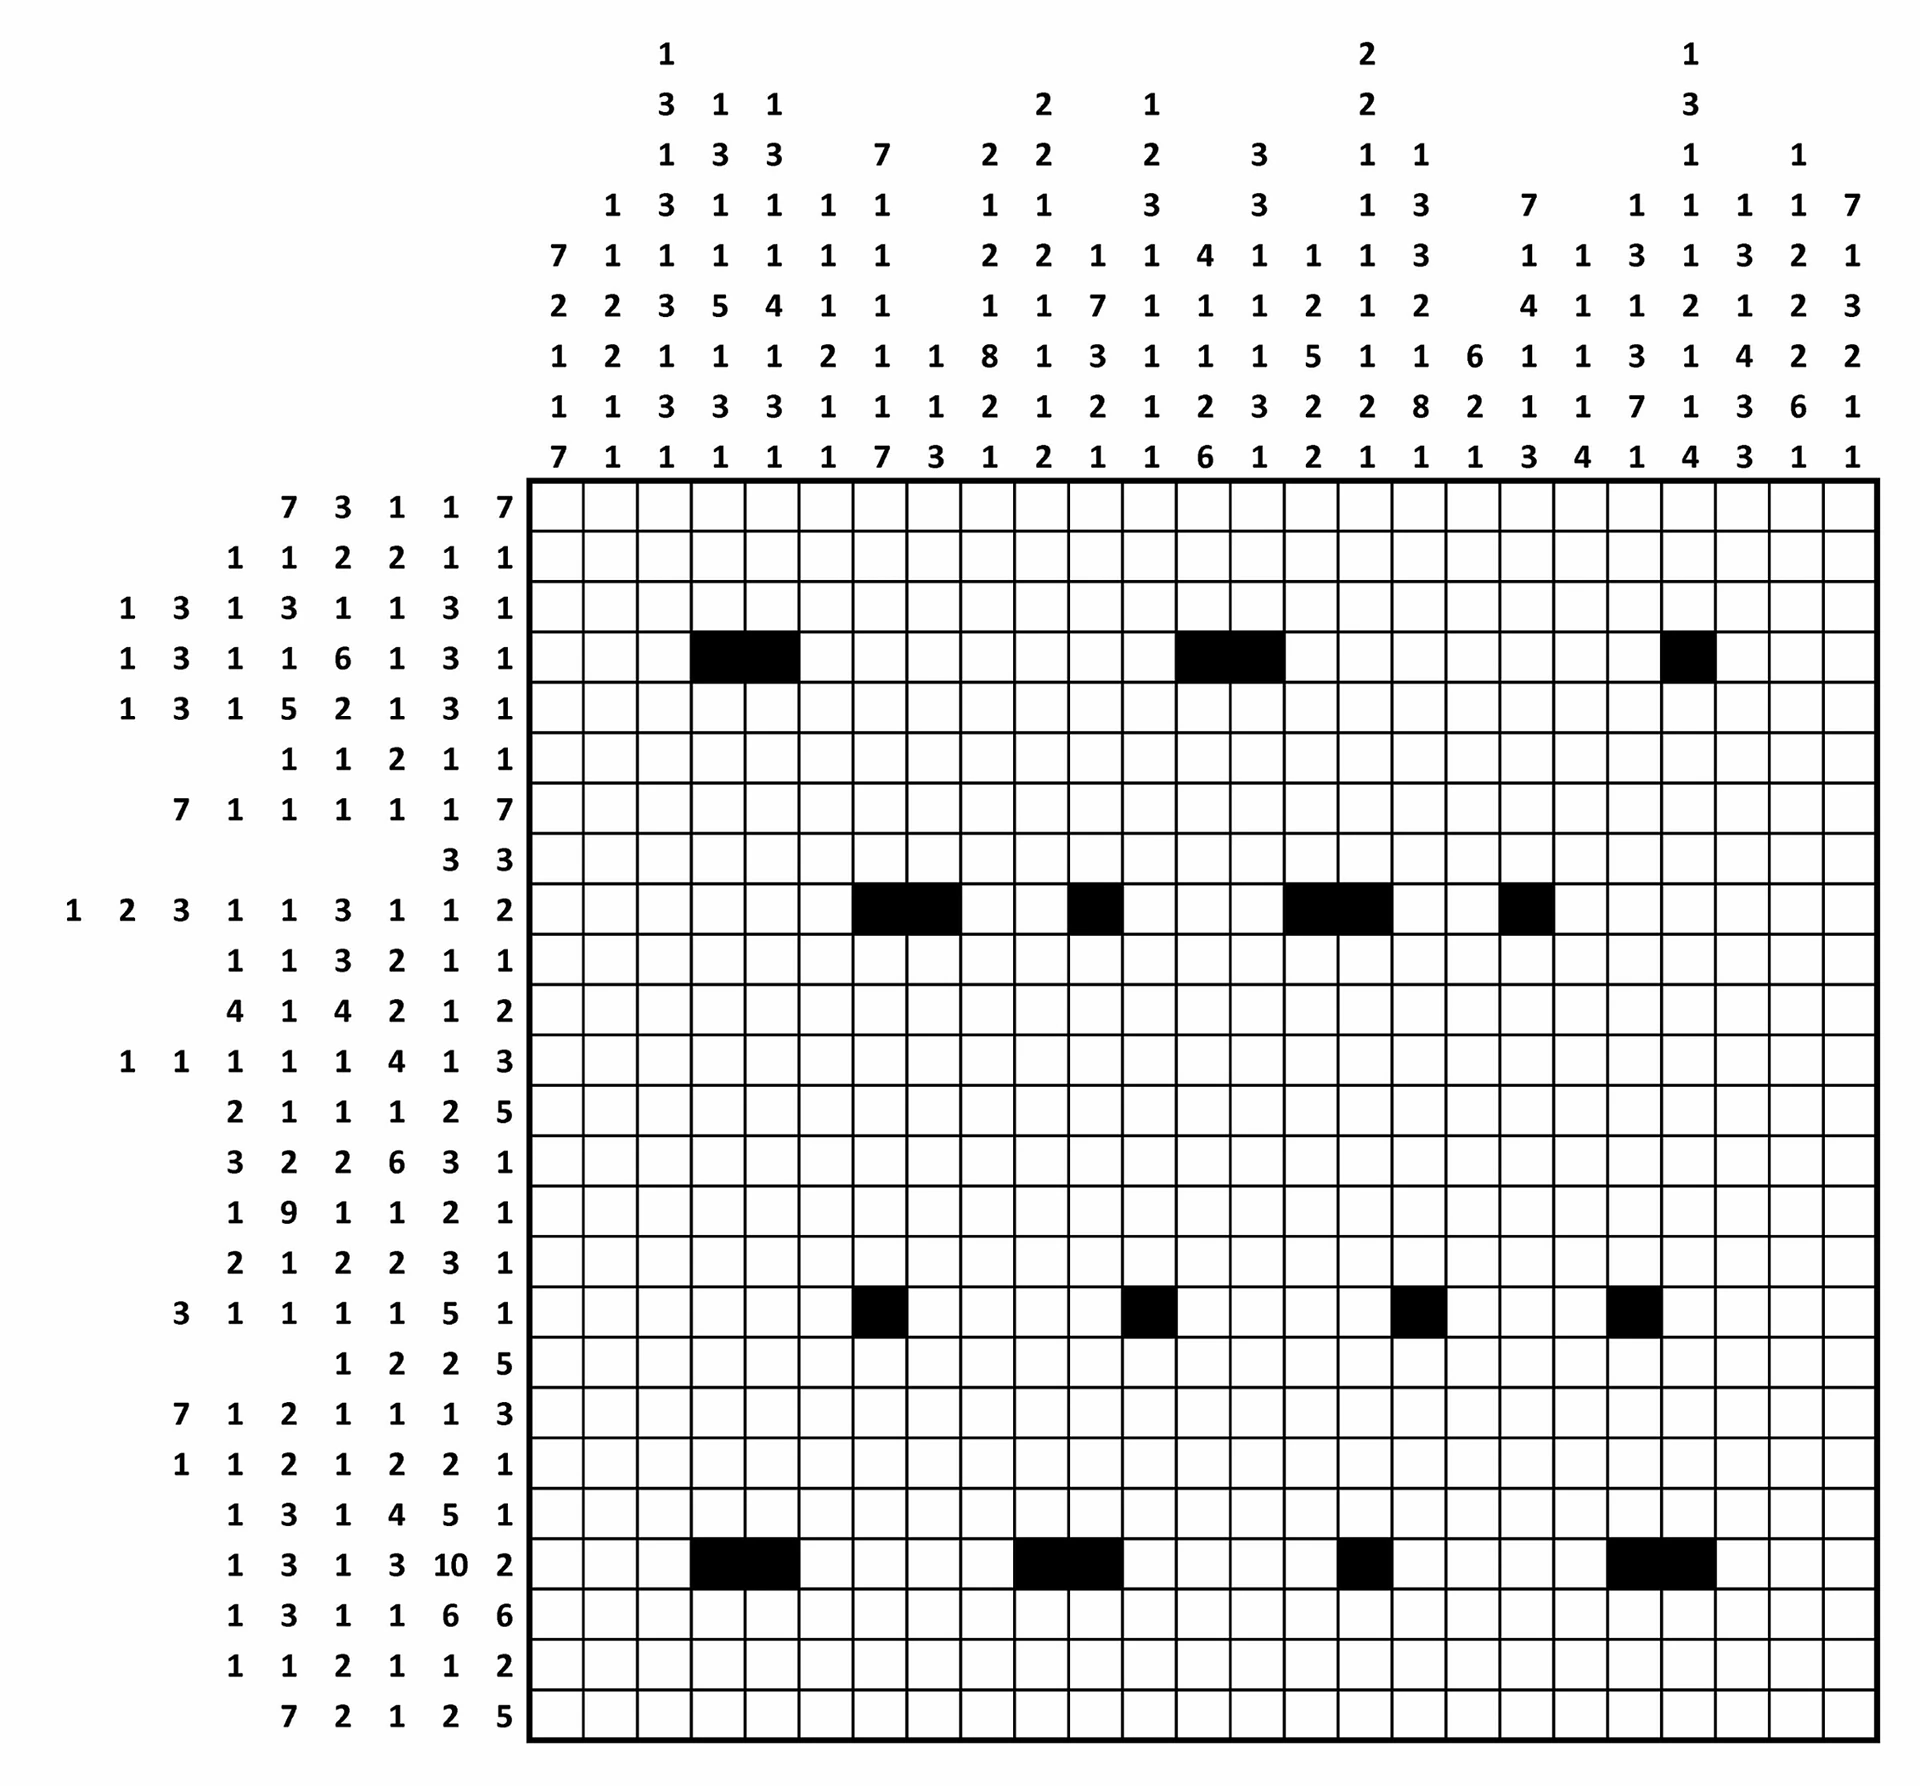 Can You Solve a UK Intelligence Agency's Christmas Puzzle?